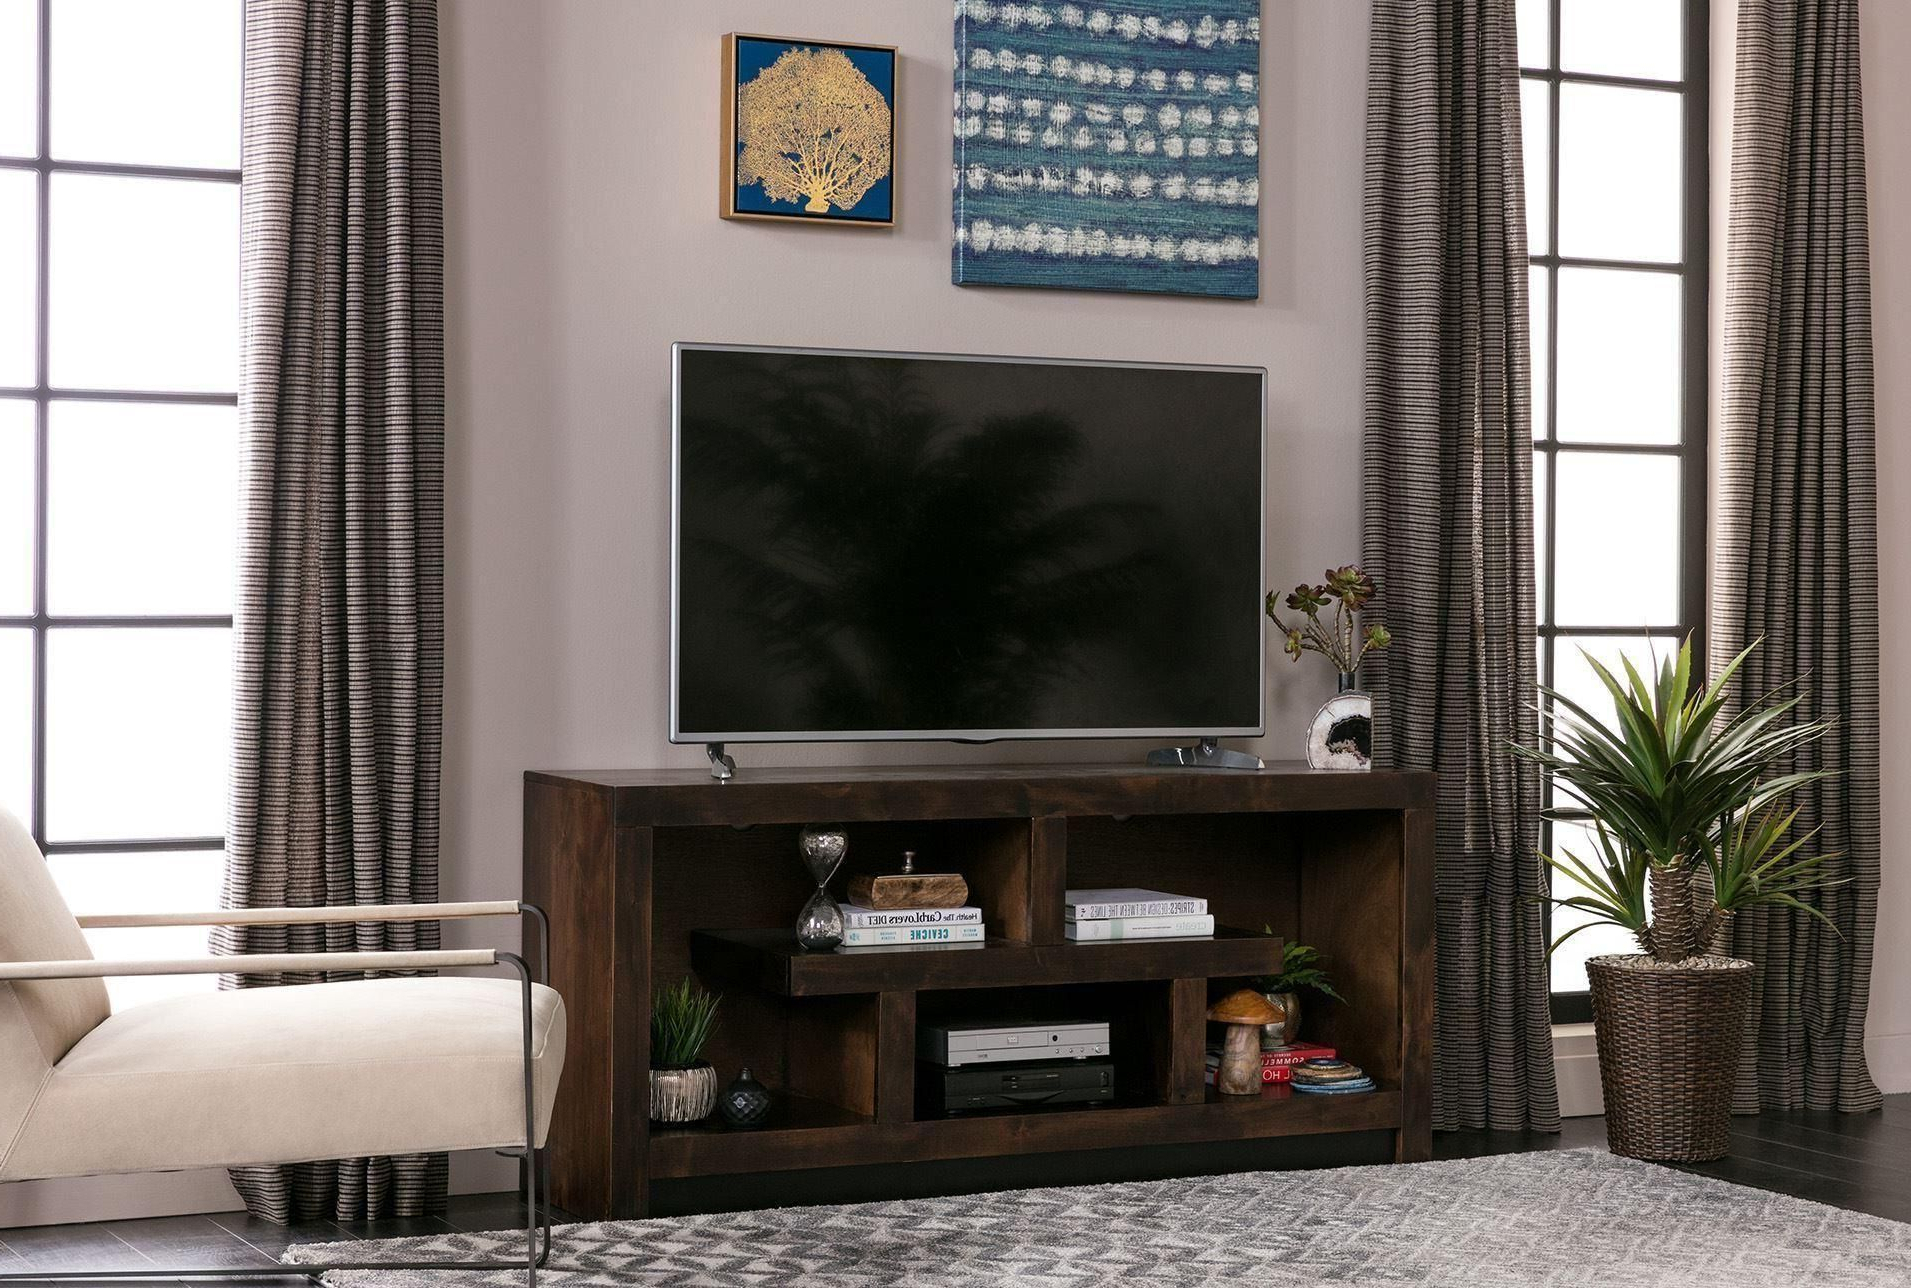 Walton 60 Inch Tv Stand | Rachelle's Redesign | Pinterest | 60 Inch In Walton 60 Inch Tv Stands (View 2 of 20)